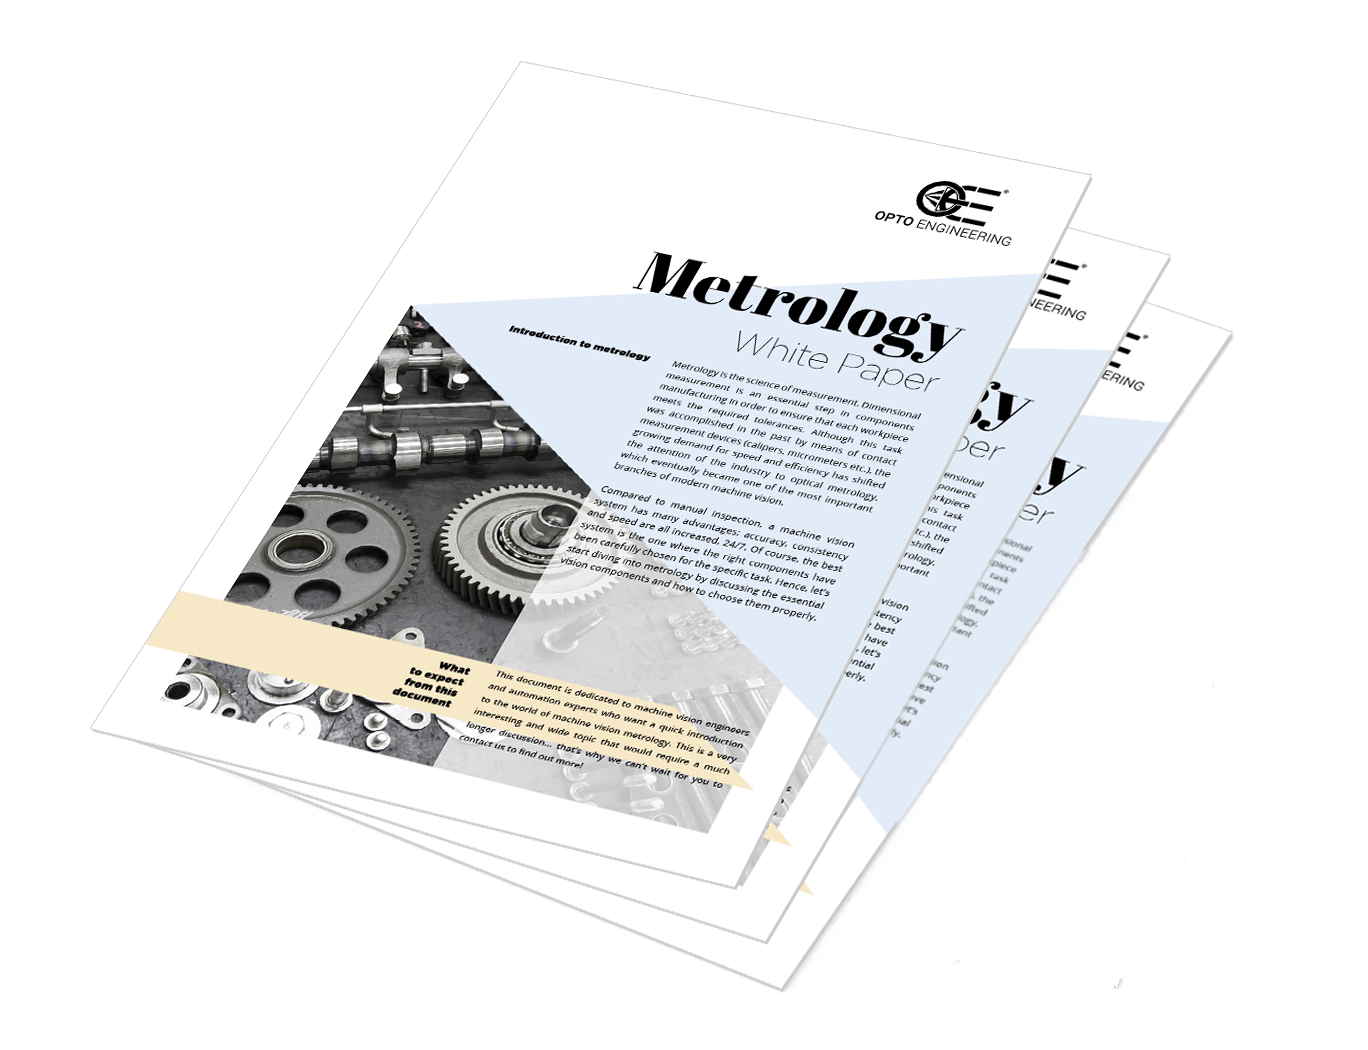 Metrology Download